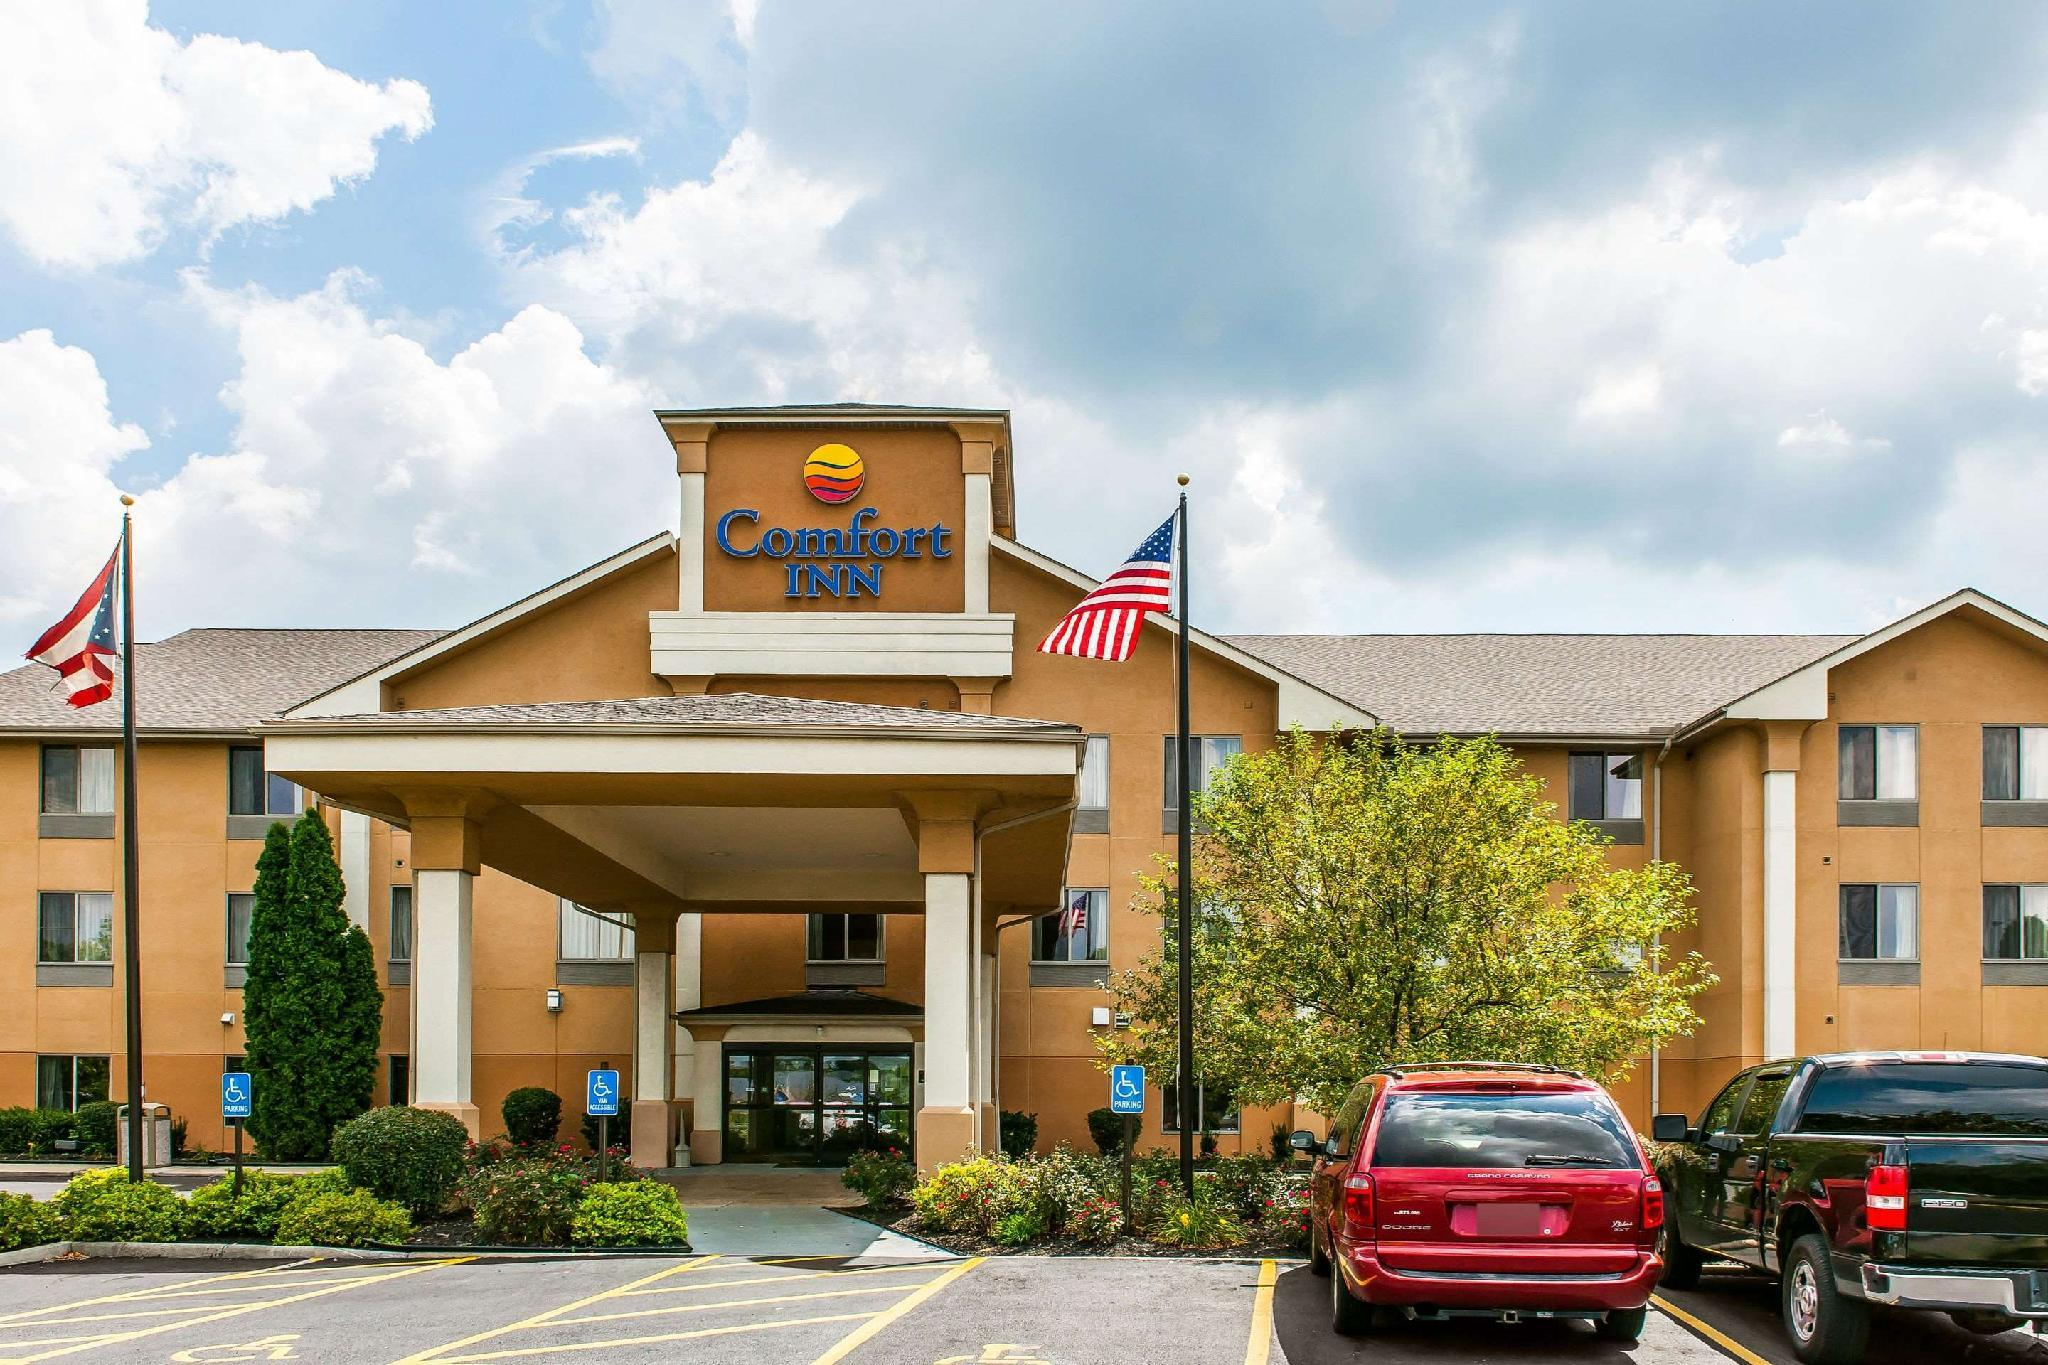 Comfort Inn Reviews